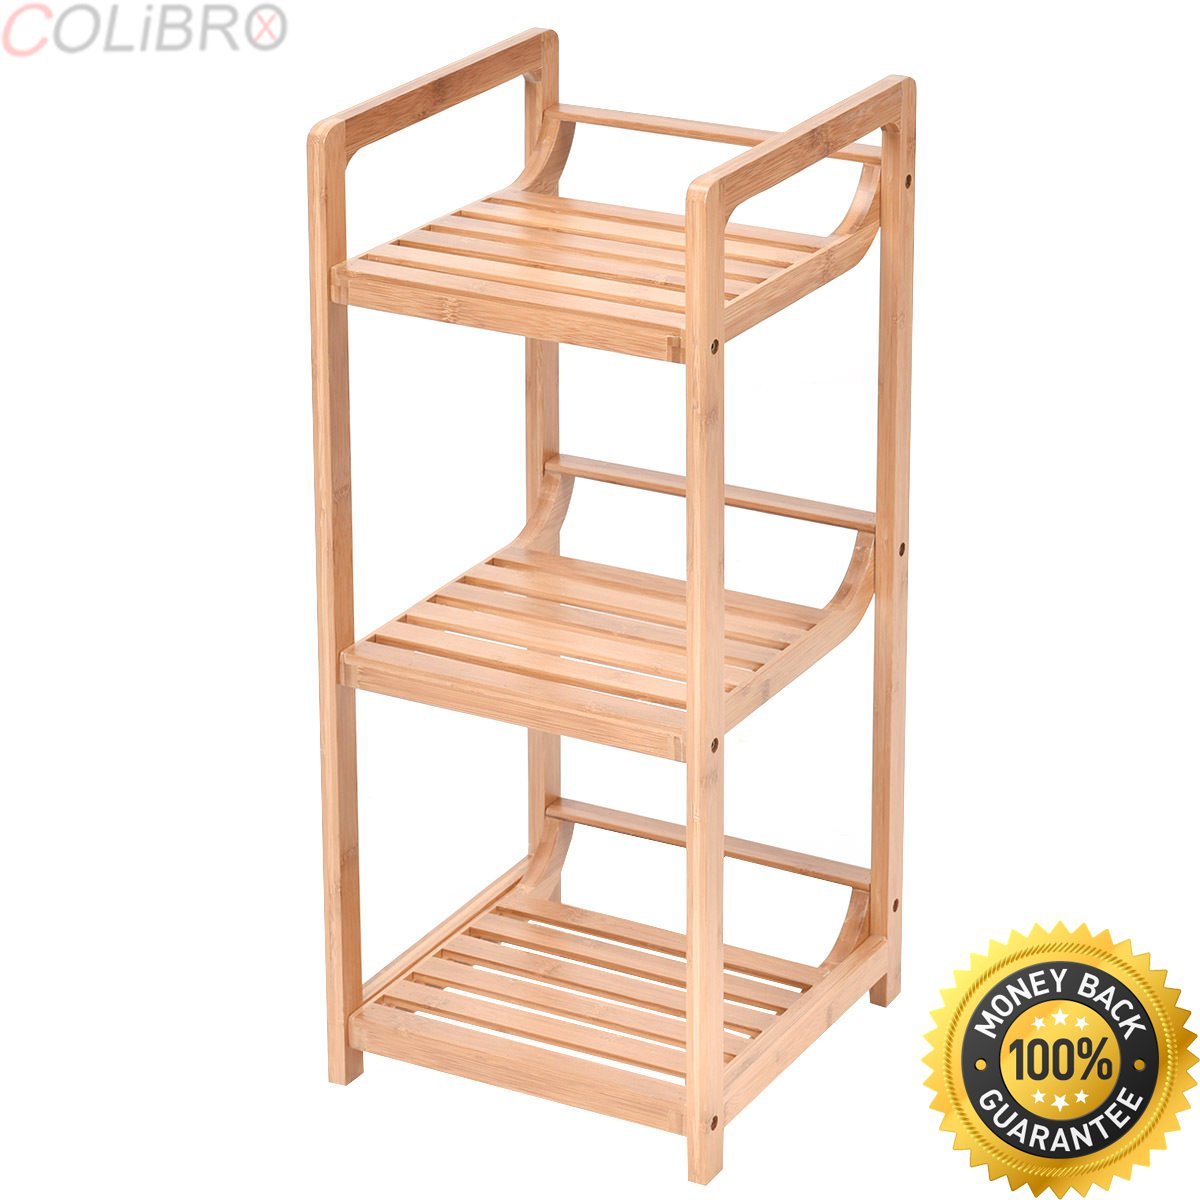 COLIBROX--3-Tier Bathroom Shelf Bamboo Bath Storage Space Saver Organizer Shelves Rack New. bamboo bathroom wall shelf. bamboo bathroom space saver over toilet. bamboo space saver bed bath beyond.